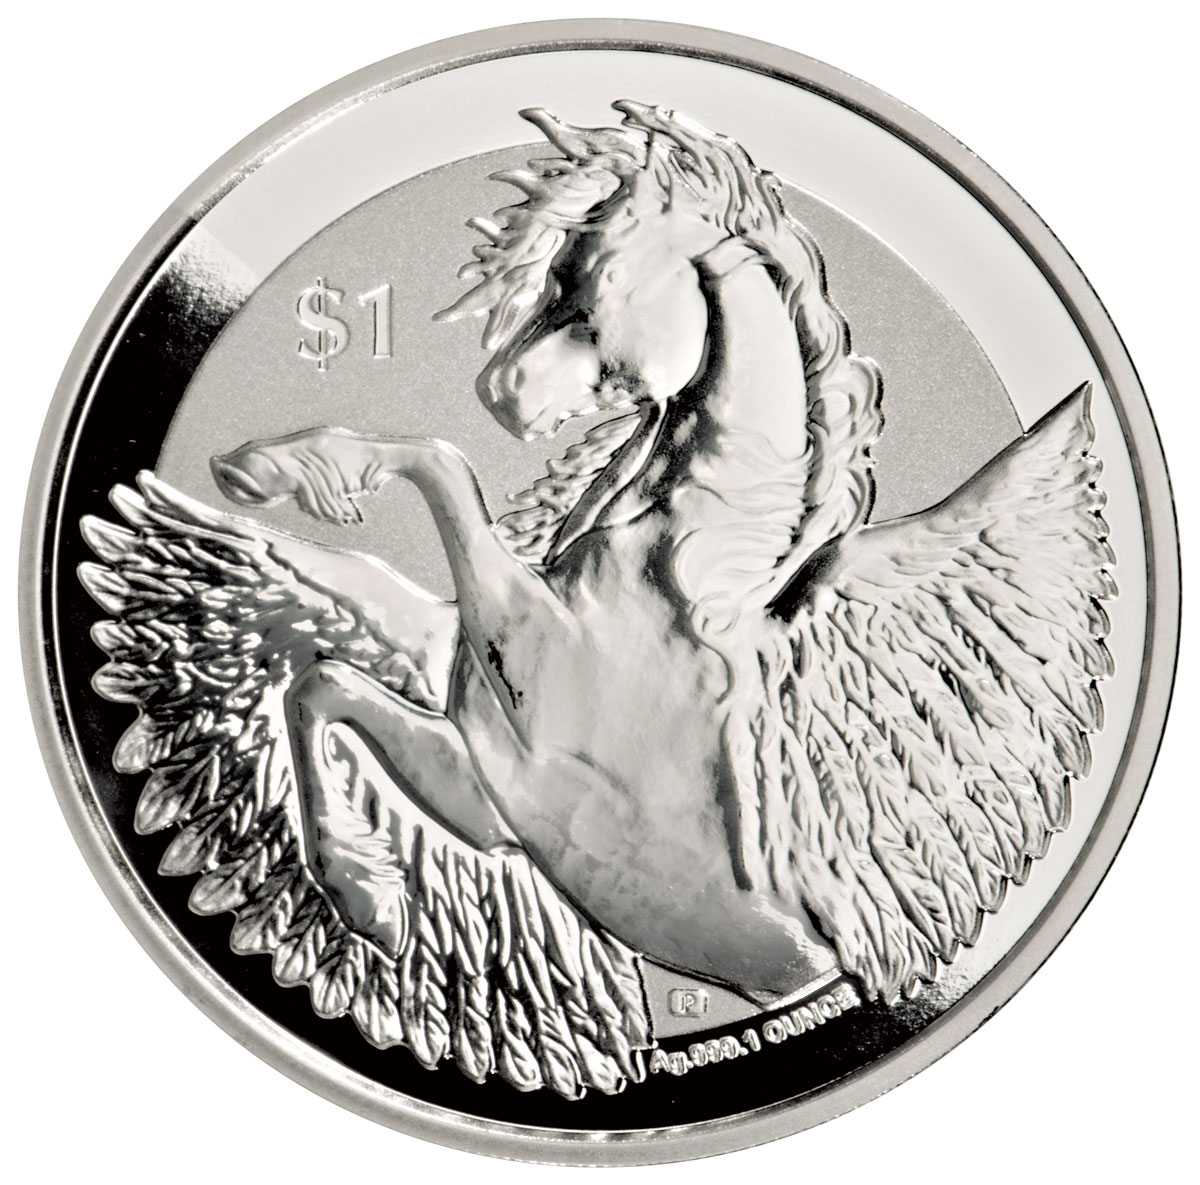 2018 British Virgin Islands 1 oz Silver Pegasus Reverse Proof $1 Coin GEM Reverse Proof